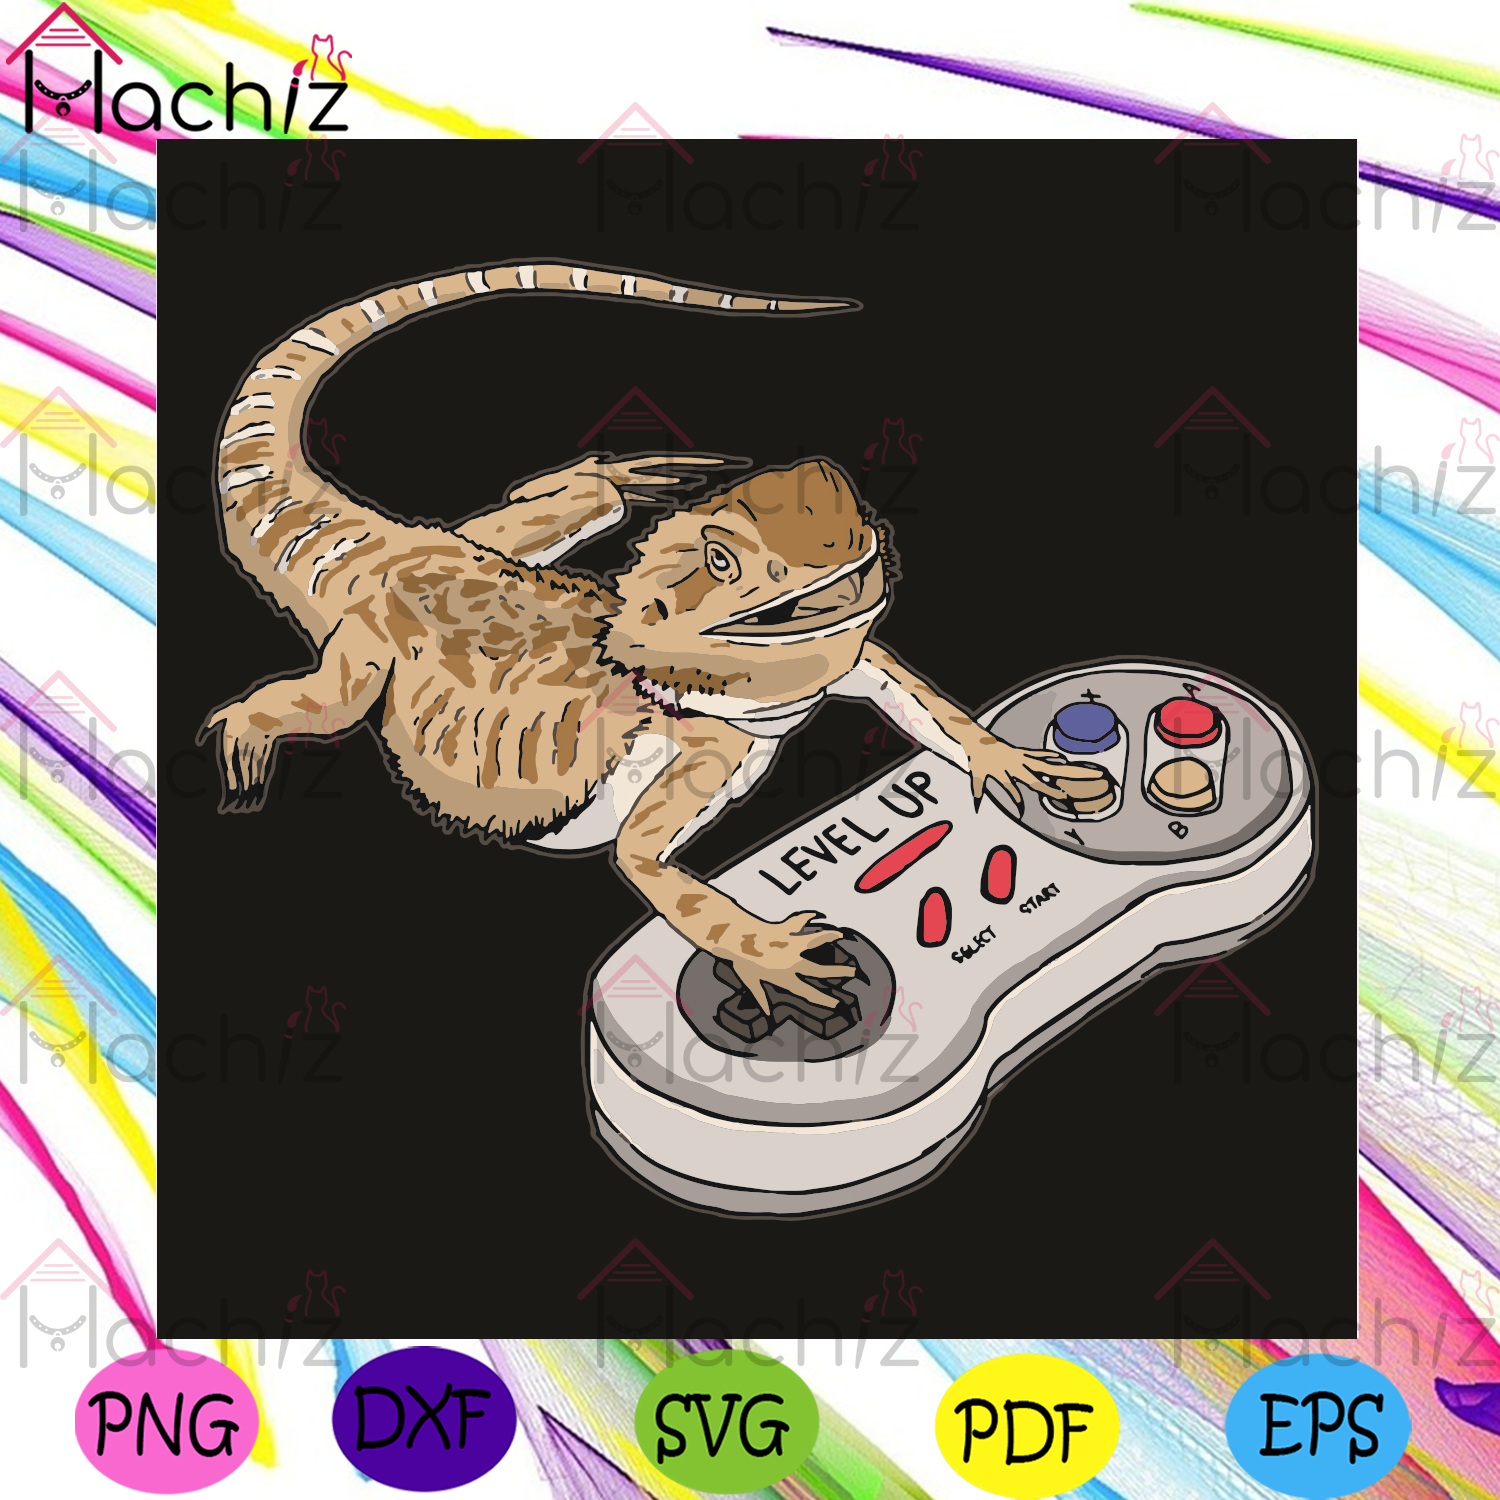 Bearded Dragon Playing Video Game Svg, Trending Svg, Bearded Dragon Svg, Video Game Svg, Bearded Dragon Lovers Svg, Game Svg, Gamers Svg, Game Lovers Svg, Bearded Dragon Gifts Svg, Cute Bearded Dragon Svg, Animal Svg,